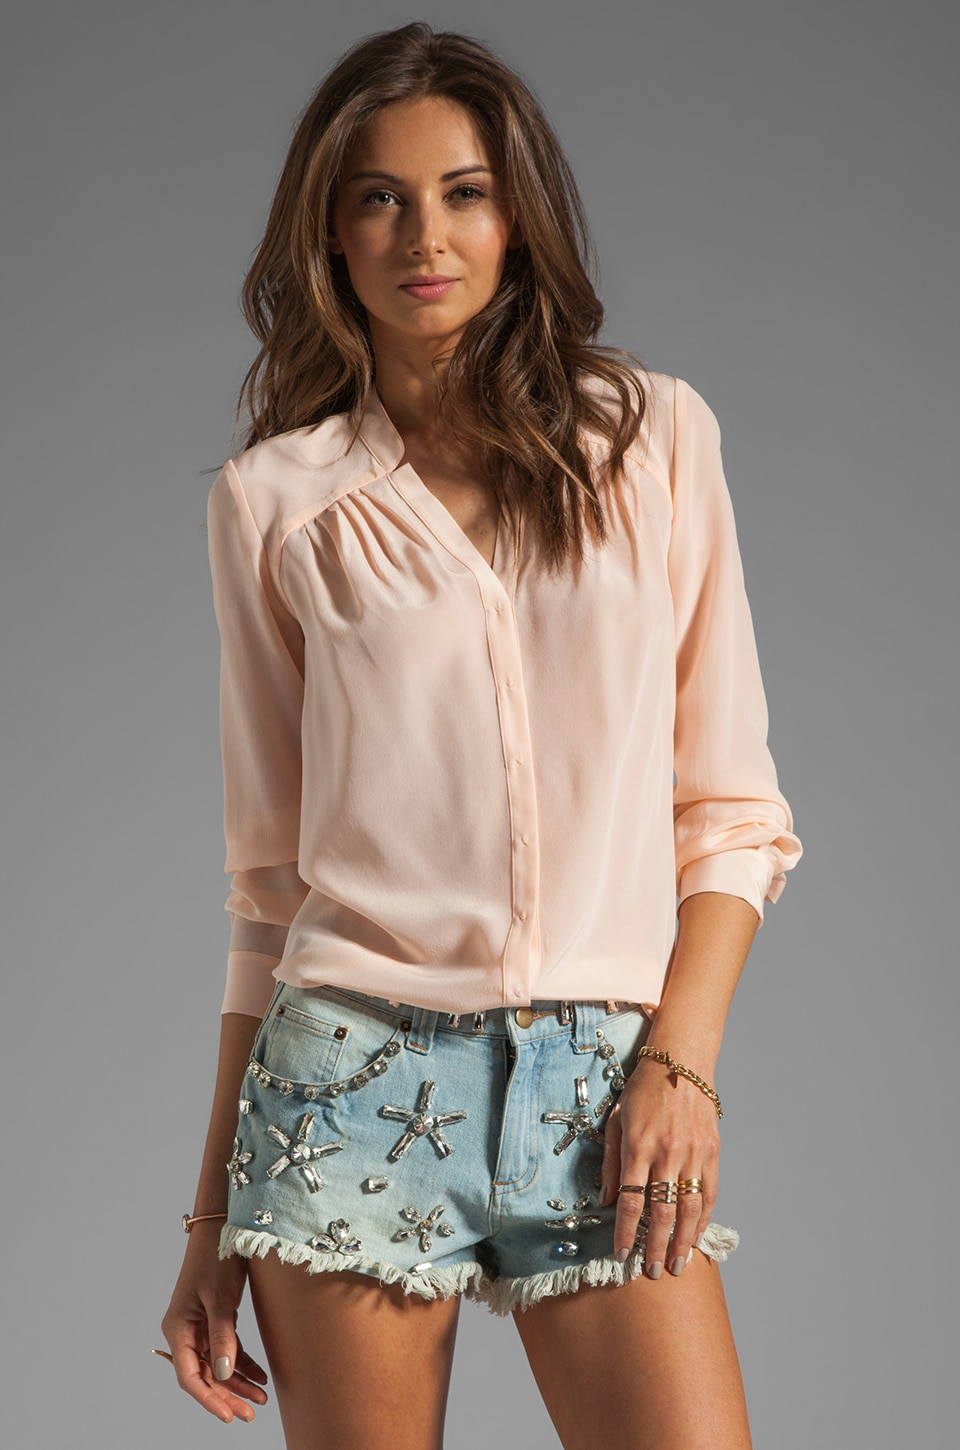 Rebecca Taylor Classic Femme Shirt in Sorbet